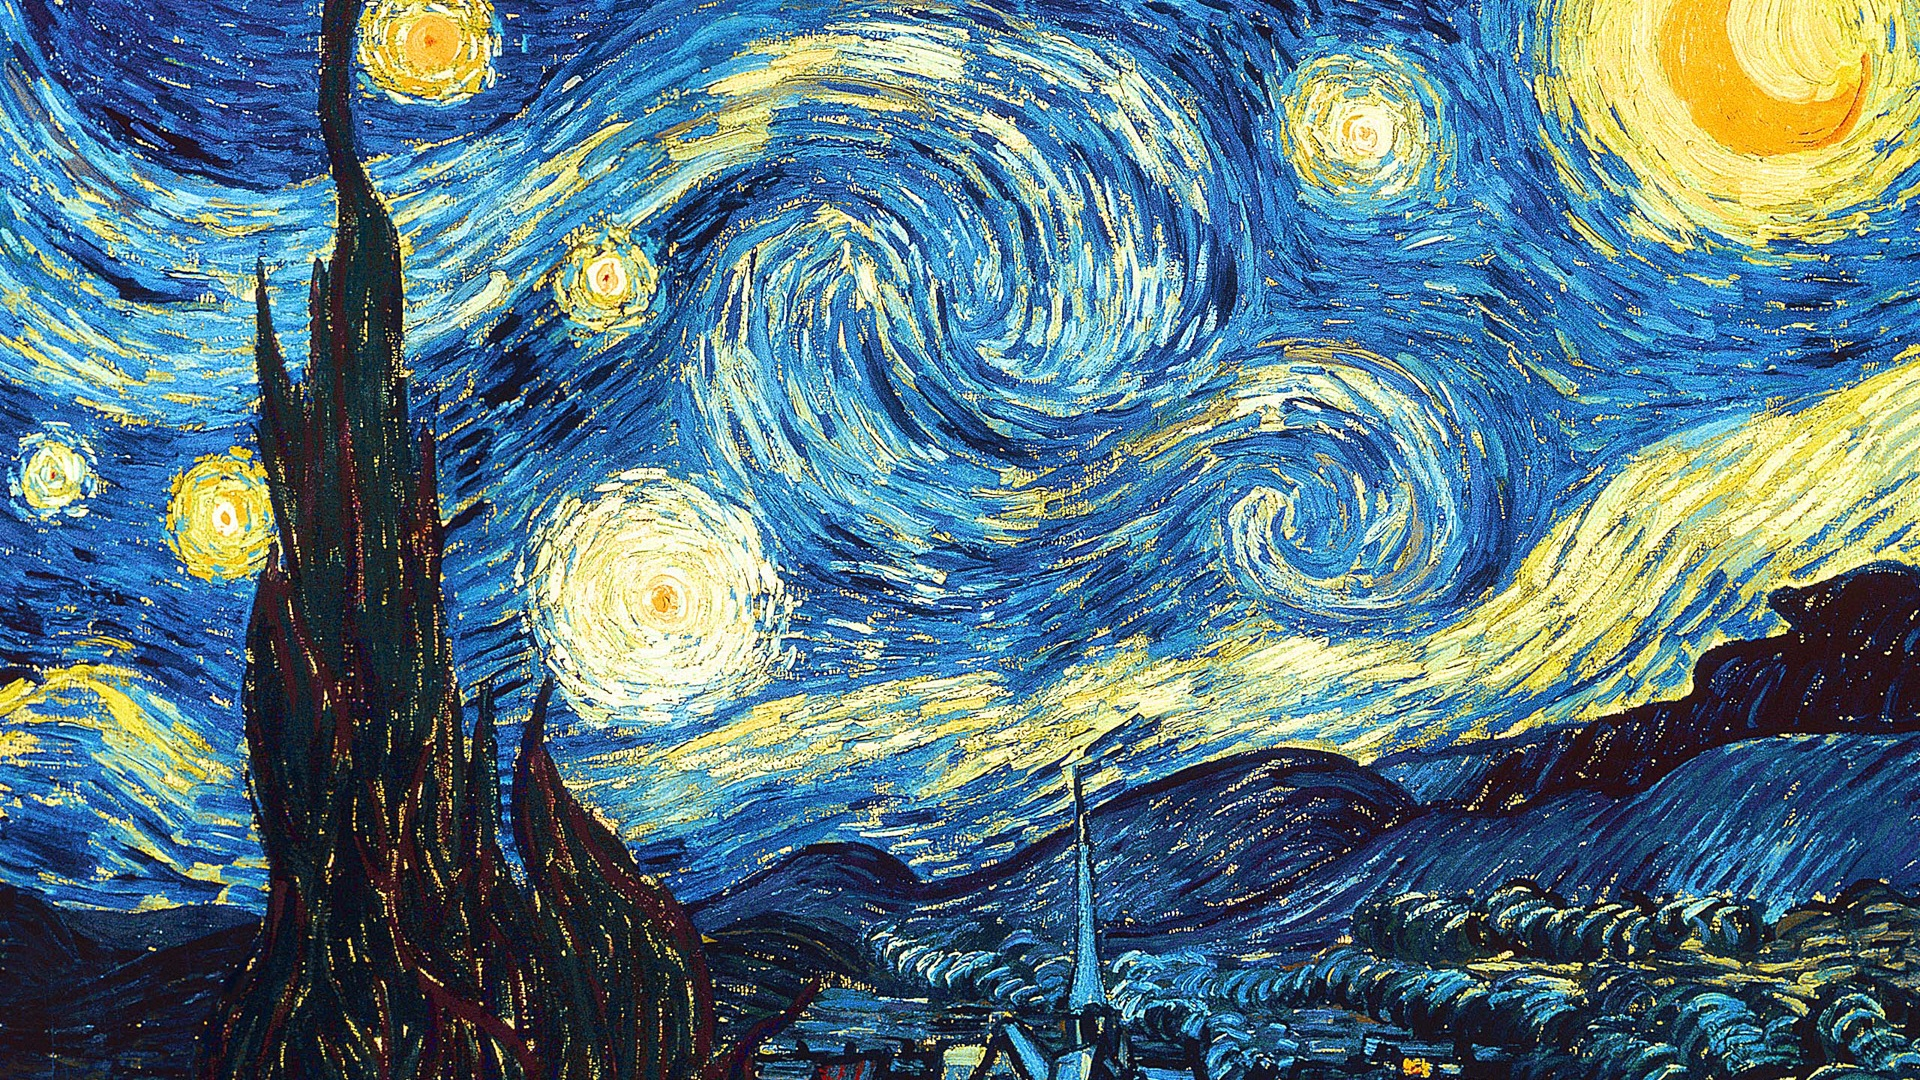 Van Gogh Starry Night Iphone Wallpaper Wallpaper Vincent Van Gogh Starry Night 1920x1200 Hd